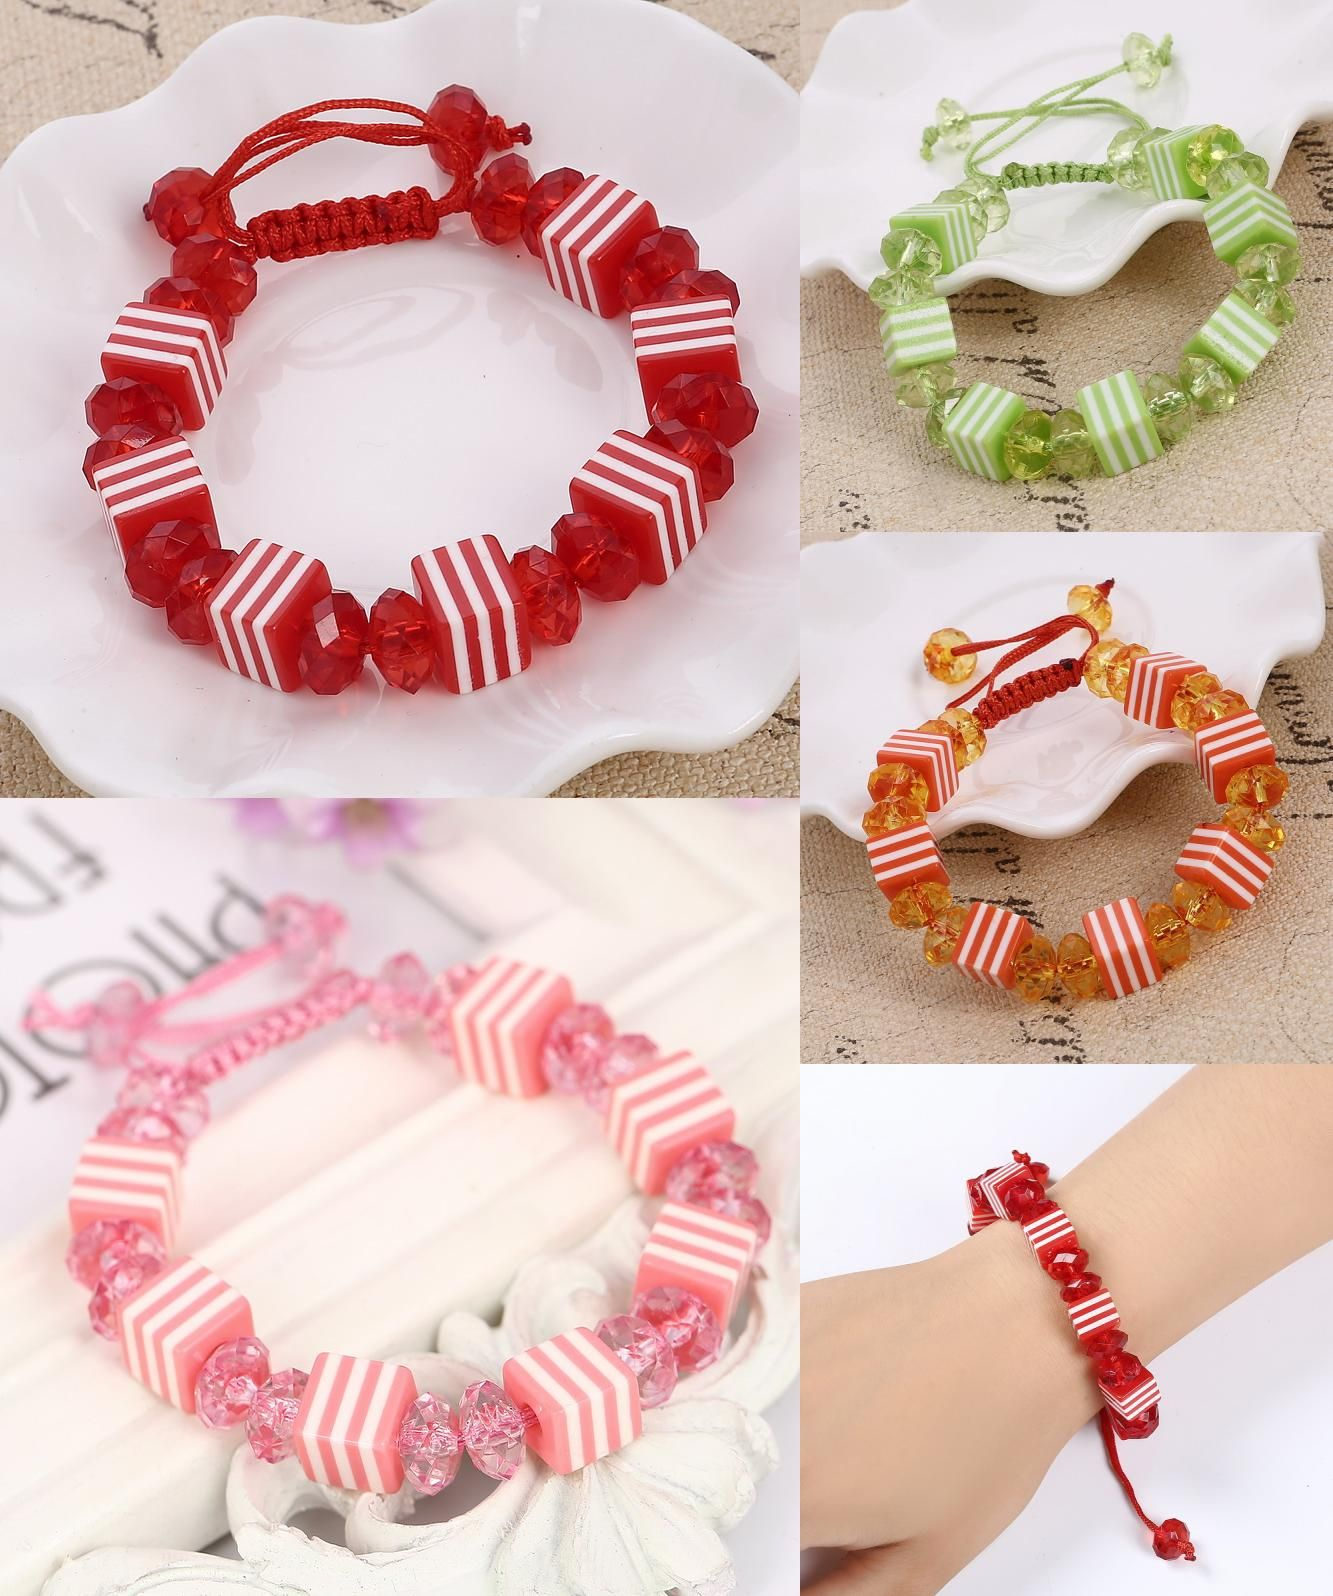 Visit to Buy] 2017 Candy Color Crystal Beads Bracelet Charms Cute ...